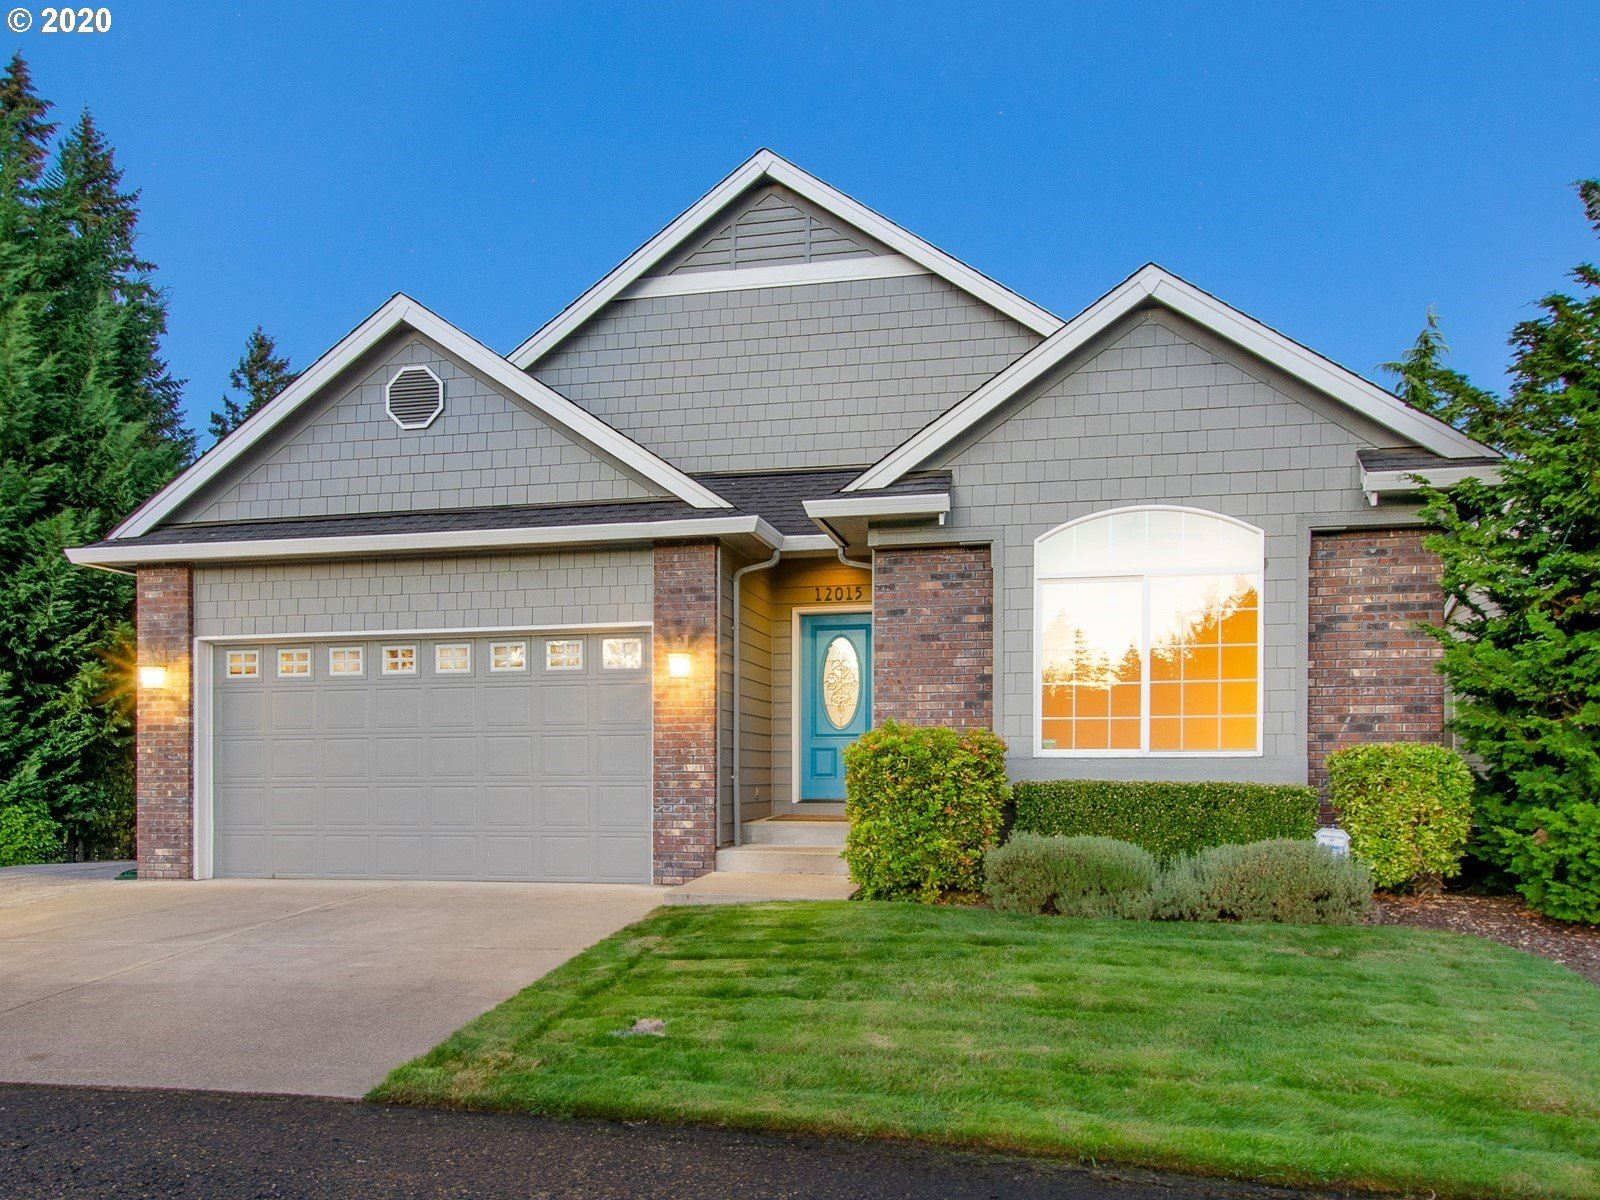 12015 NW 8TH AVE, Vancouver, WA 98685 - MLS#: 20338715